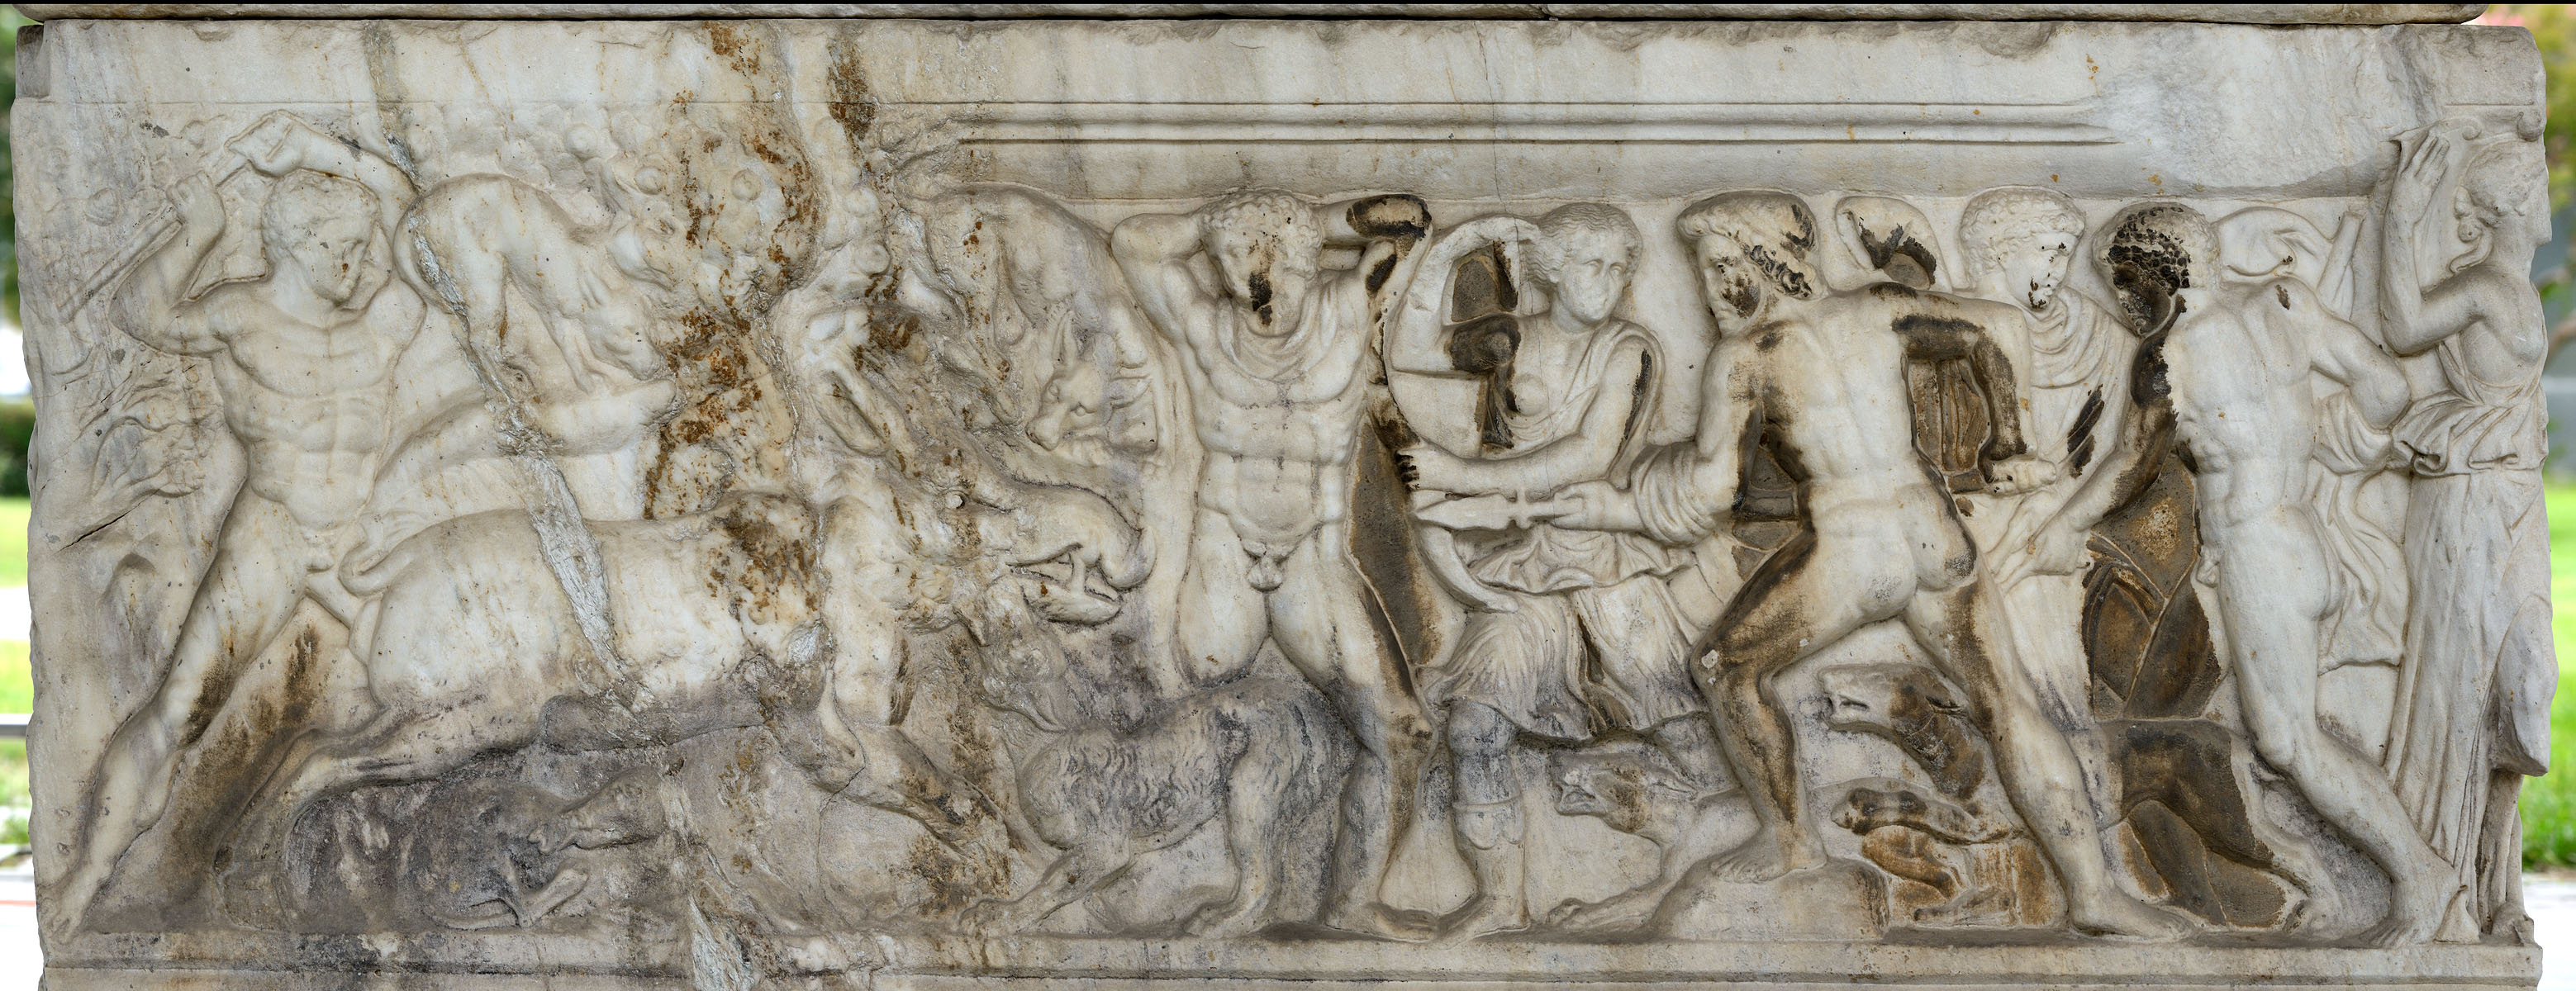 Attic sarcophagus with scenes of battles between the Greeks and the Trojan and a scene of Calydonian hunt — relief of the rear side. Marble. 220—230 CE. Inv. No. 1246. Thessaloniki, Archaeological Museum